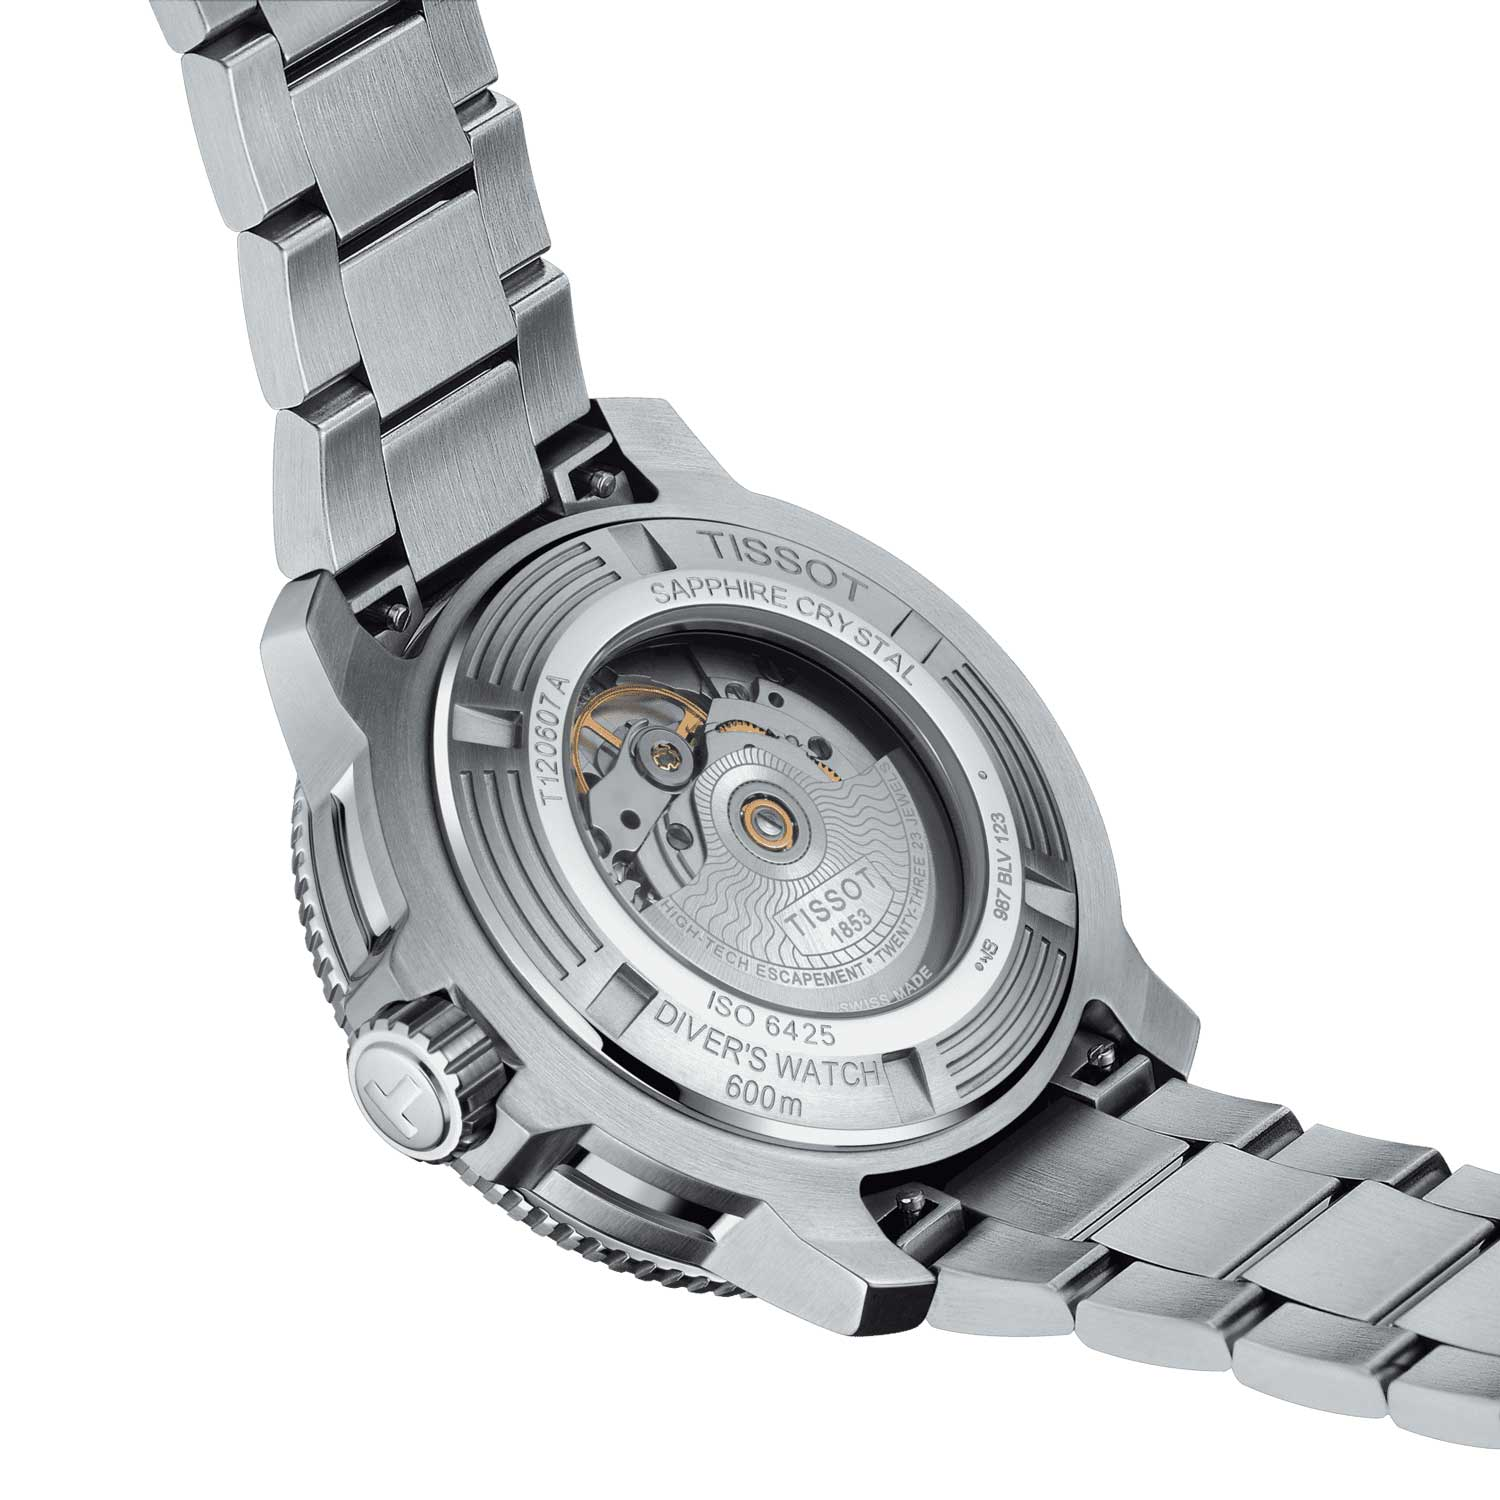 The Seastar 2000 Pro has a transparent sapphire crystal, a rare feature in a watch with such a high-pressure resistance.